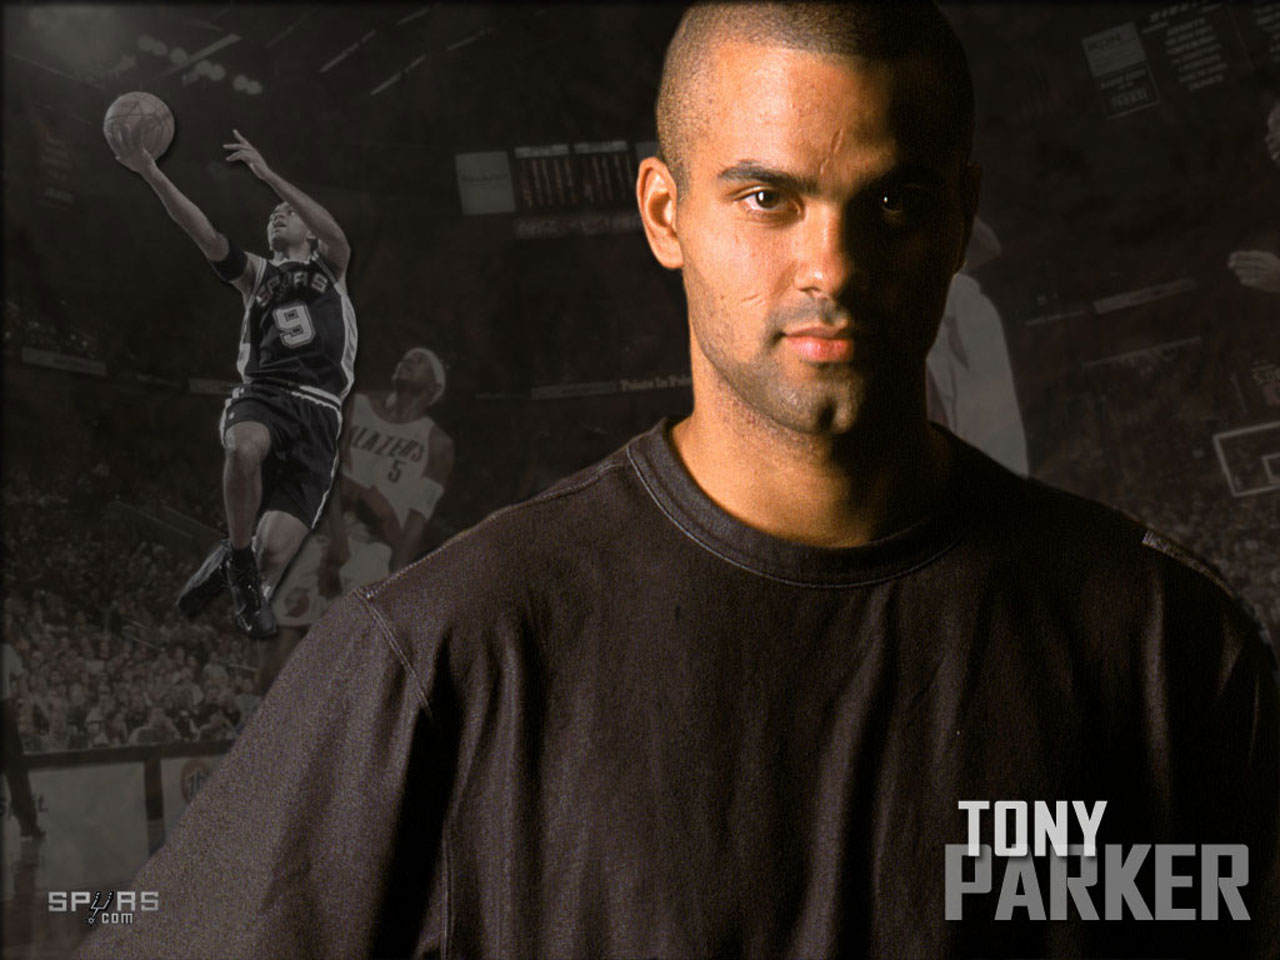 Tony Parker Portrait Wallpaper | Basketball Wallpapers at ...